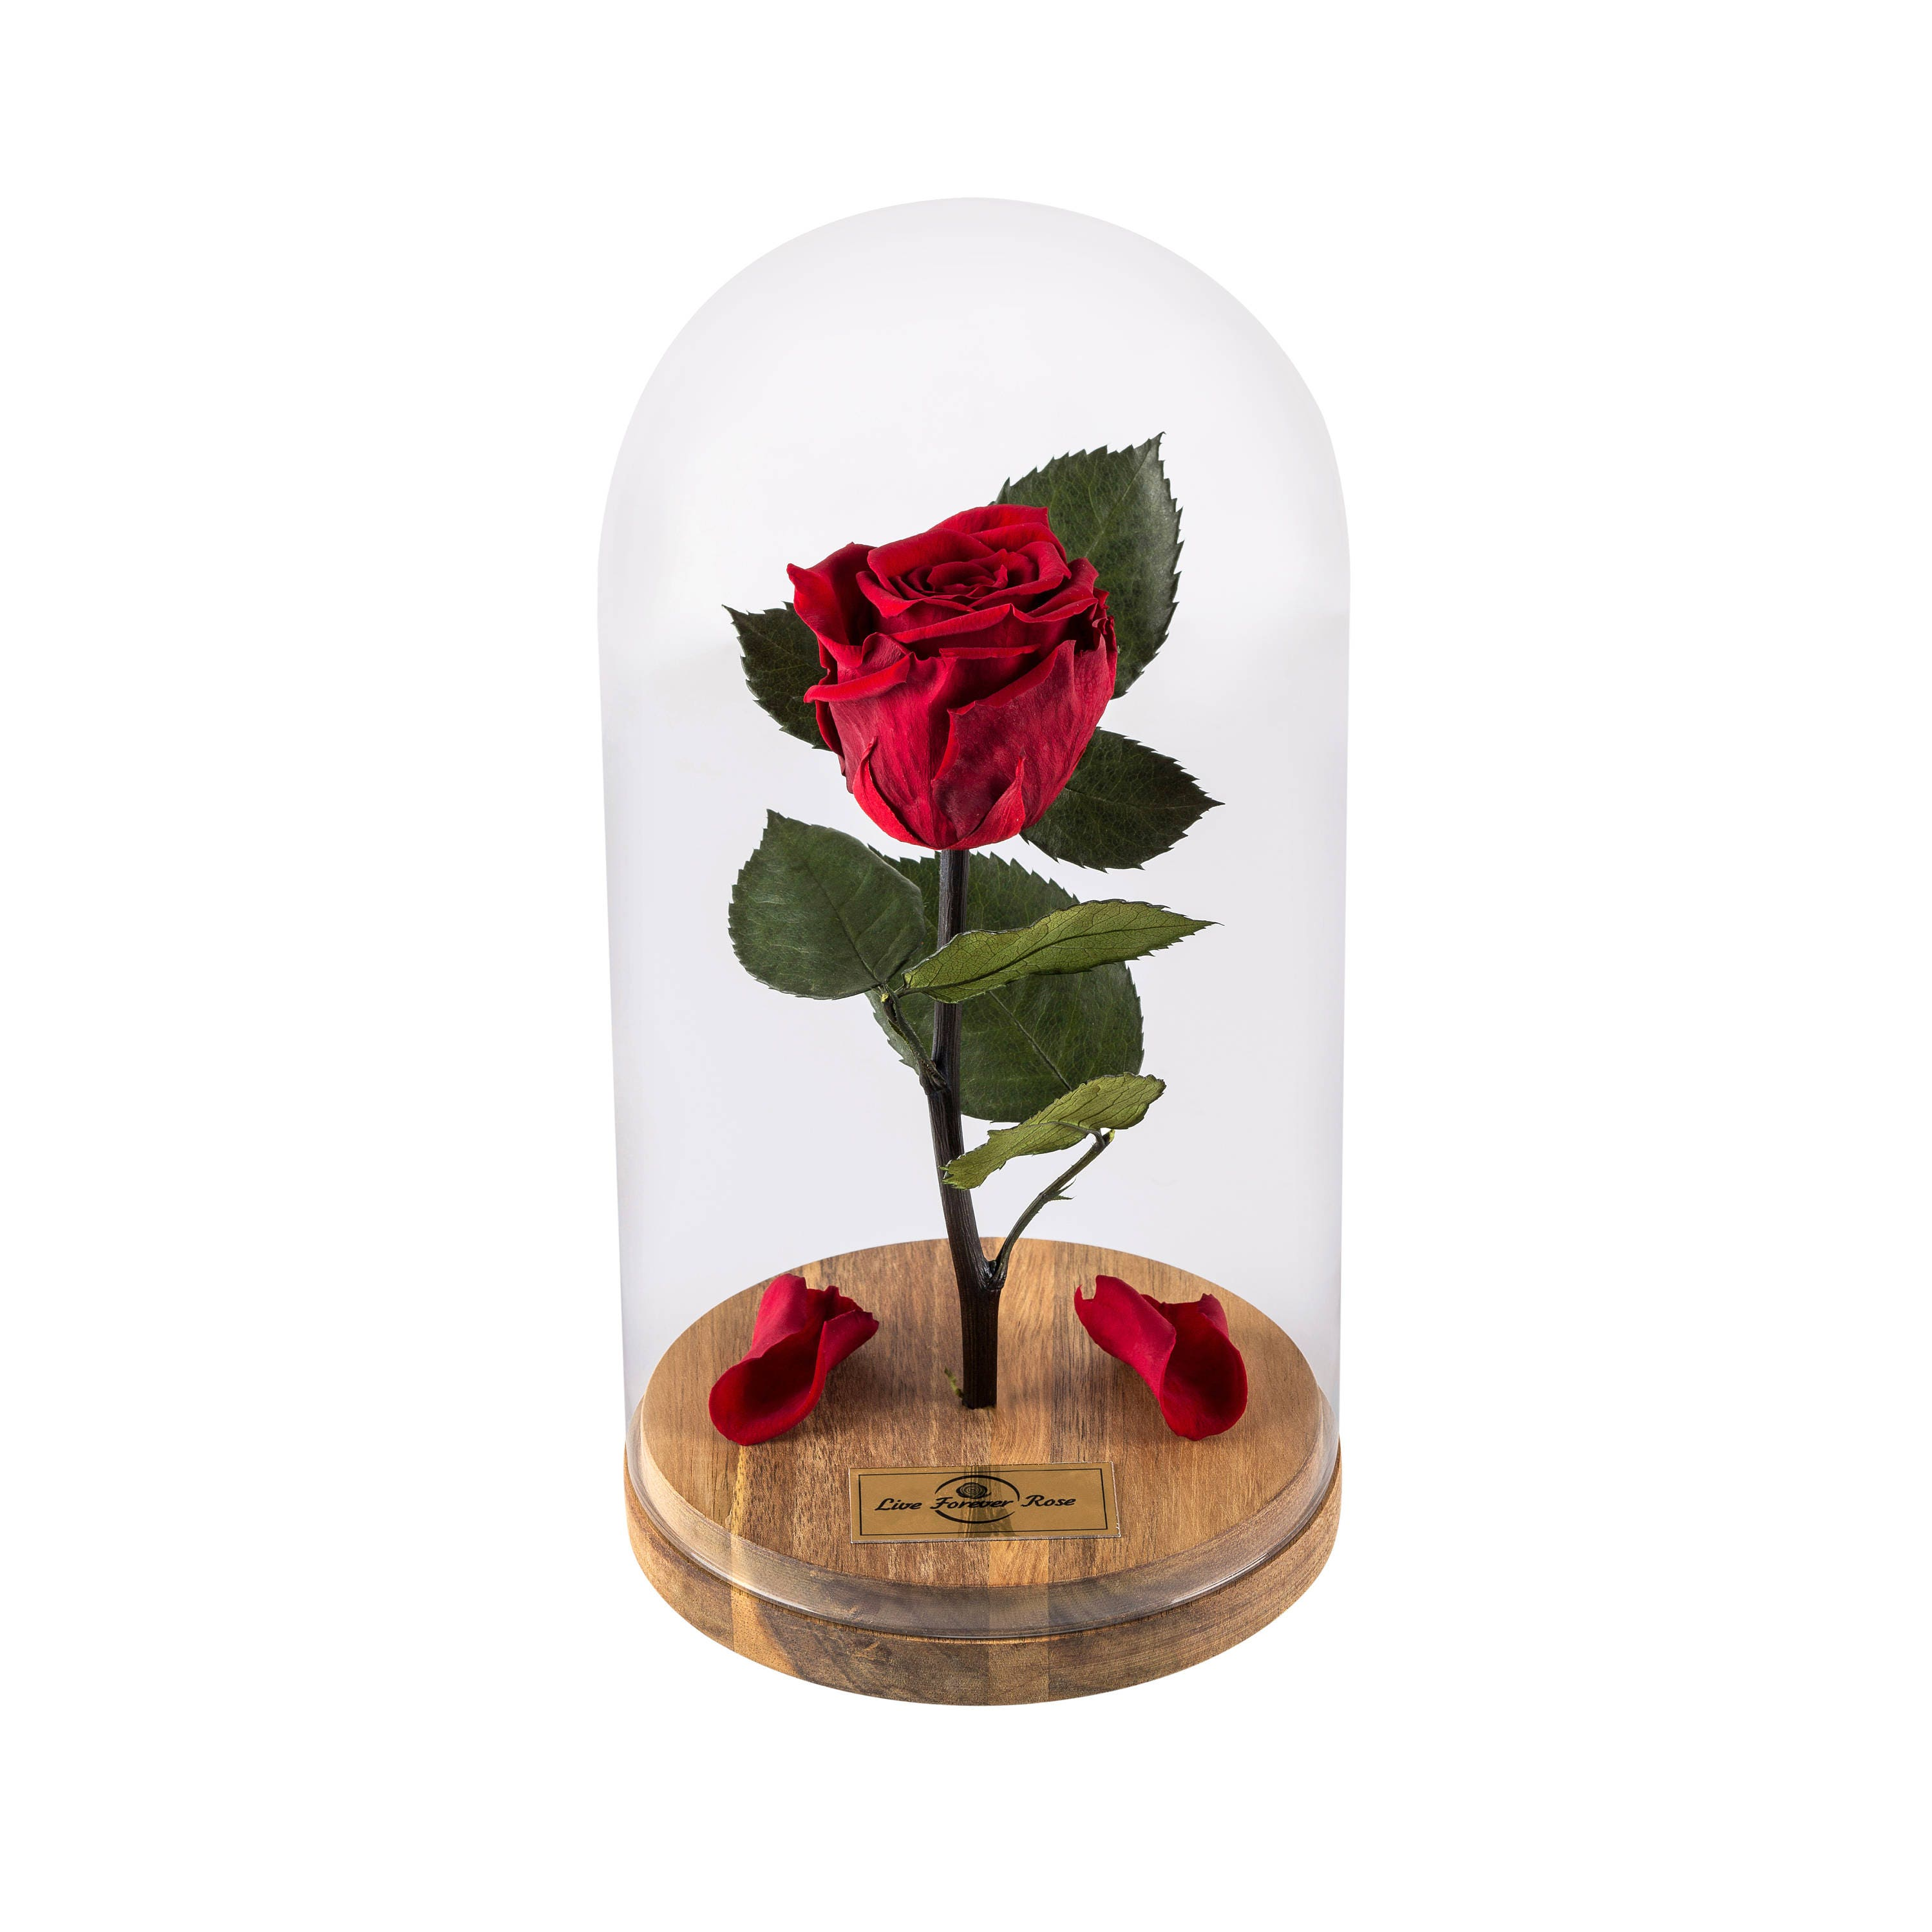 beauty and the beast rose live forever rose in glass live. Black Bedroom Furniture Sets. Home Design Ideas